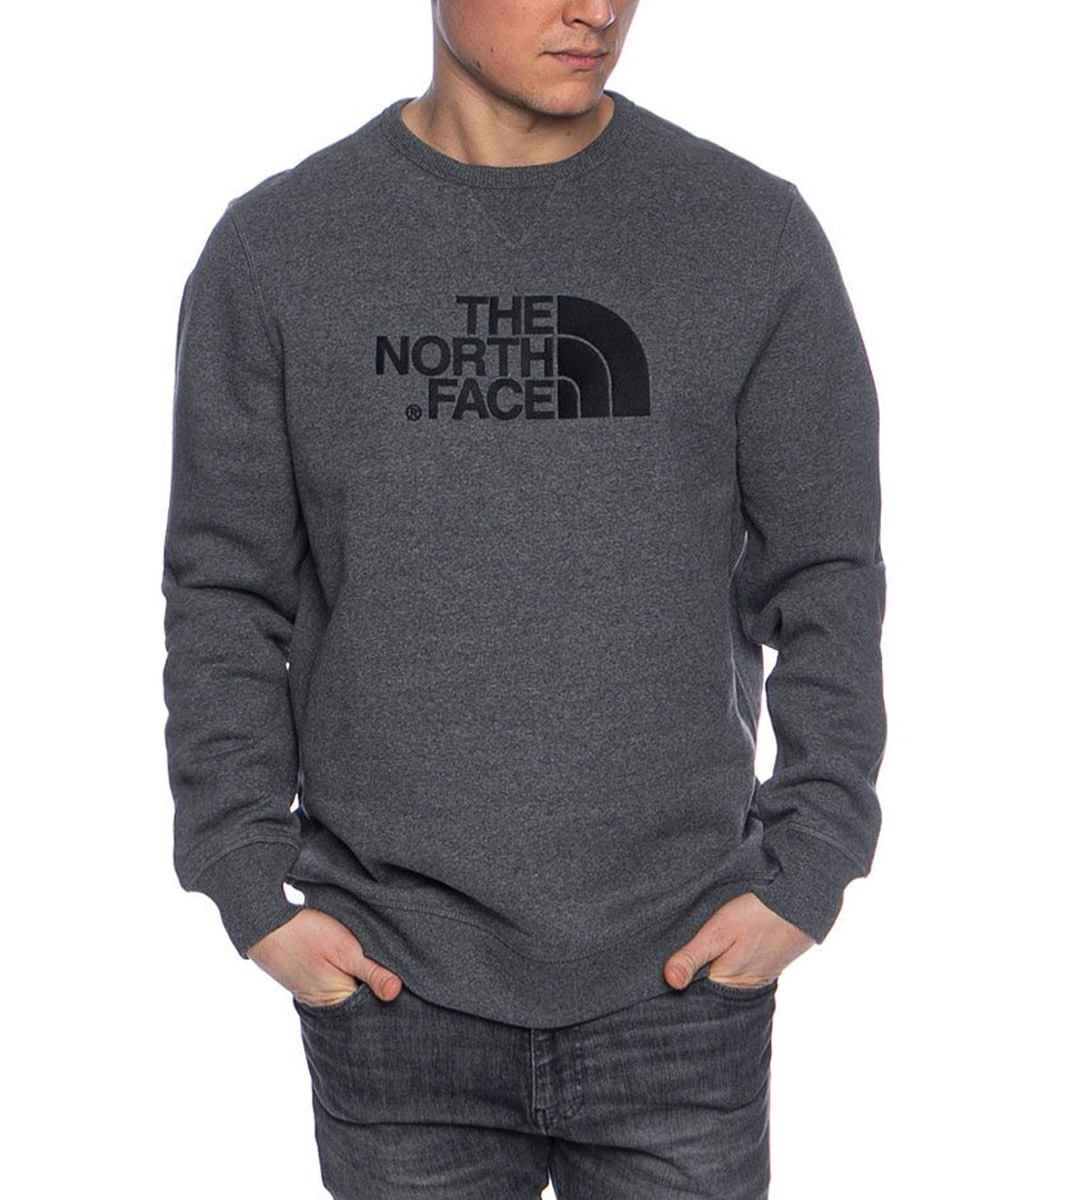 THE NORTH FACE M DREW PEAK CREW NFA4SVRGVD-GVD Ανθρακί